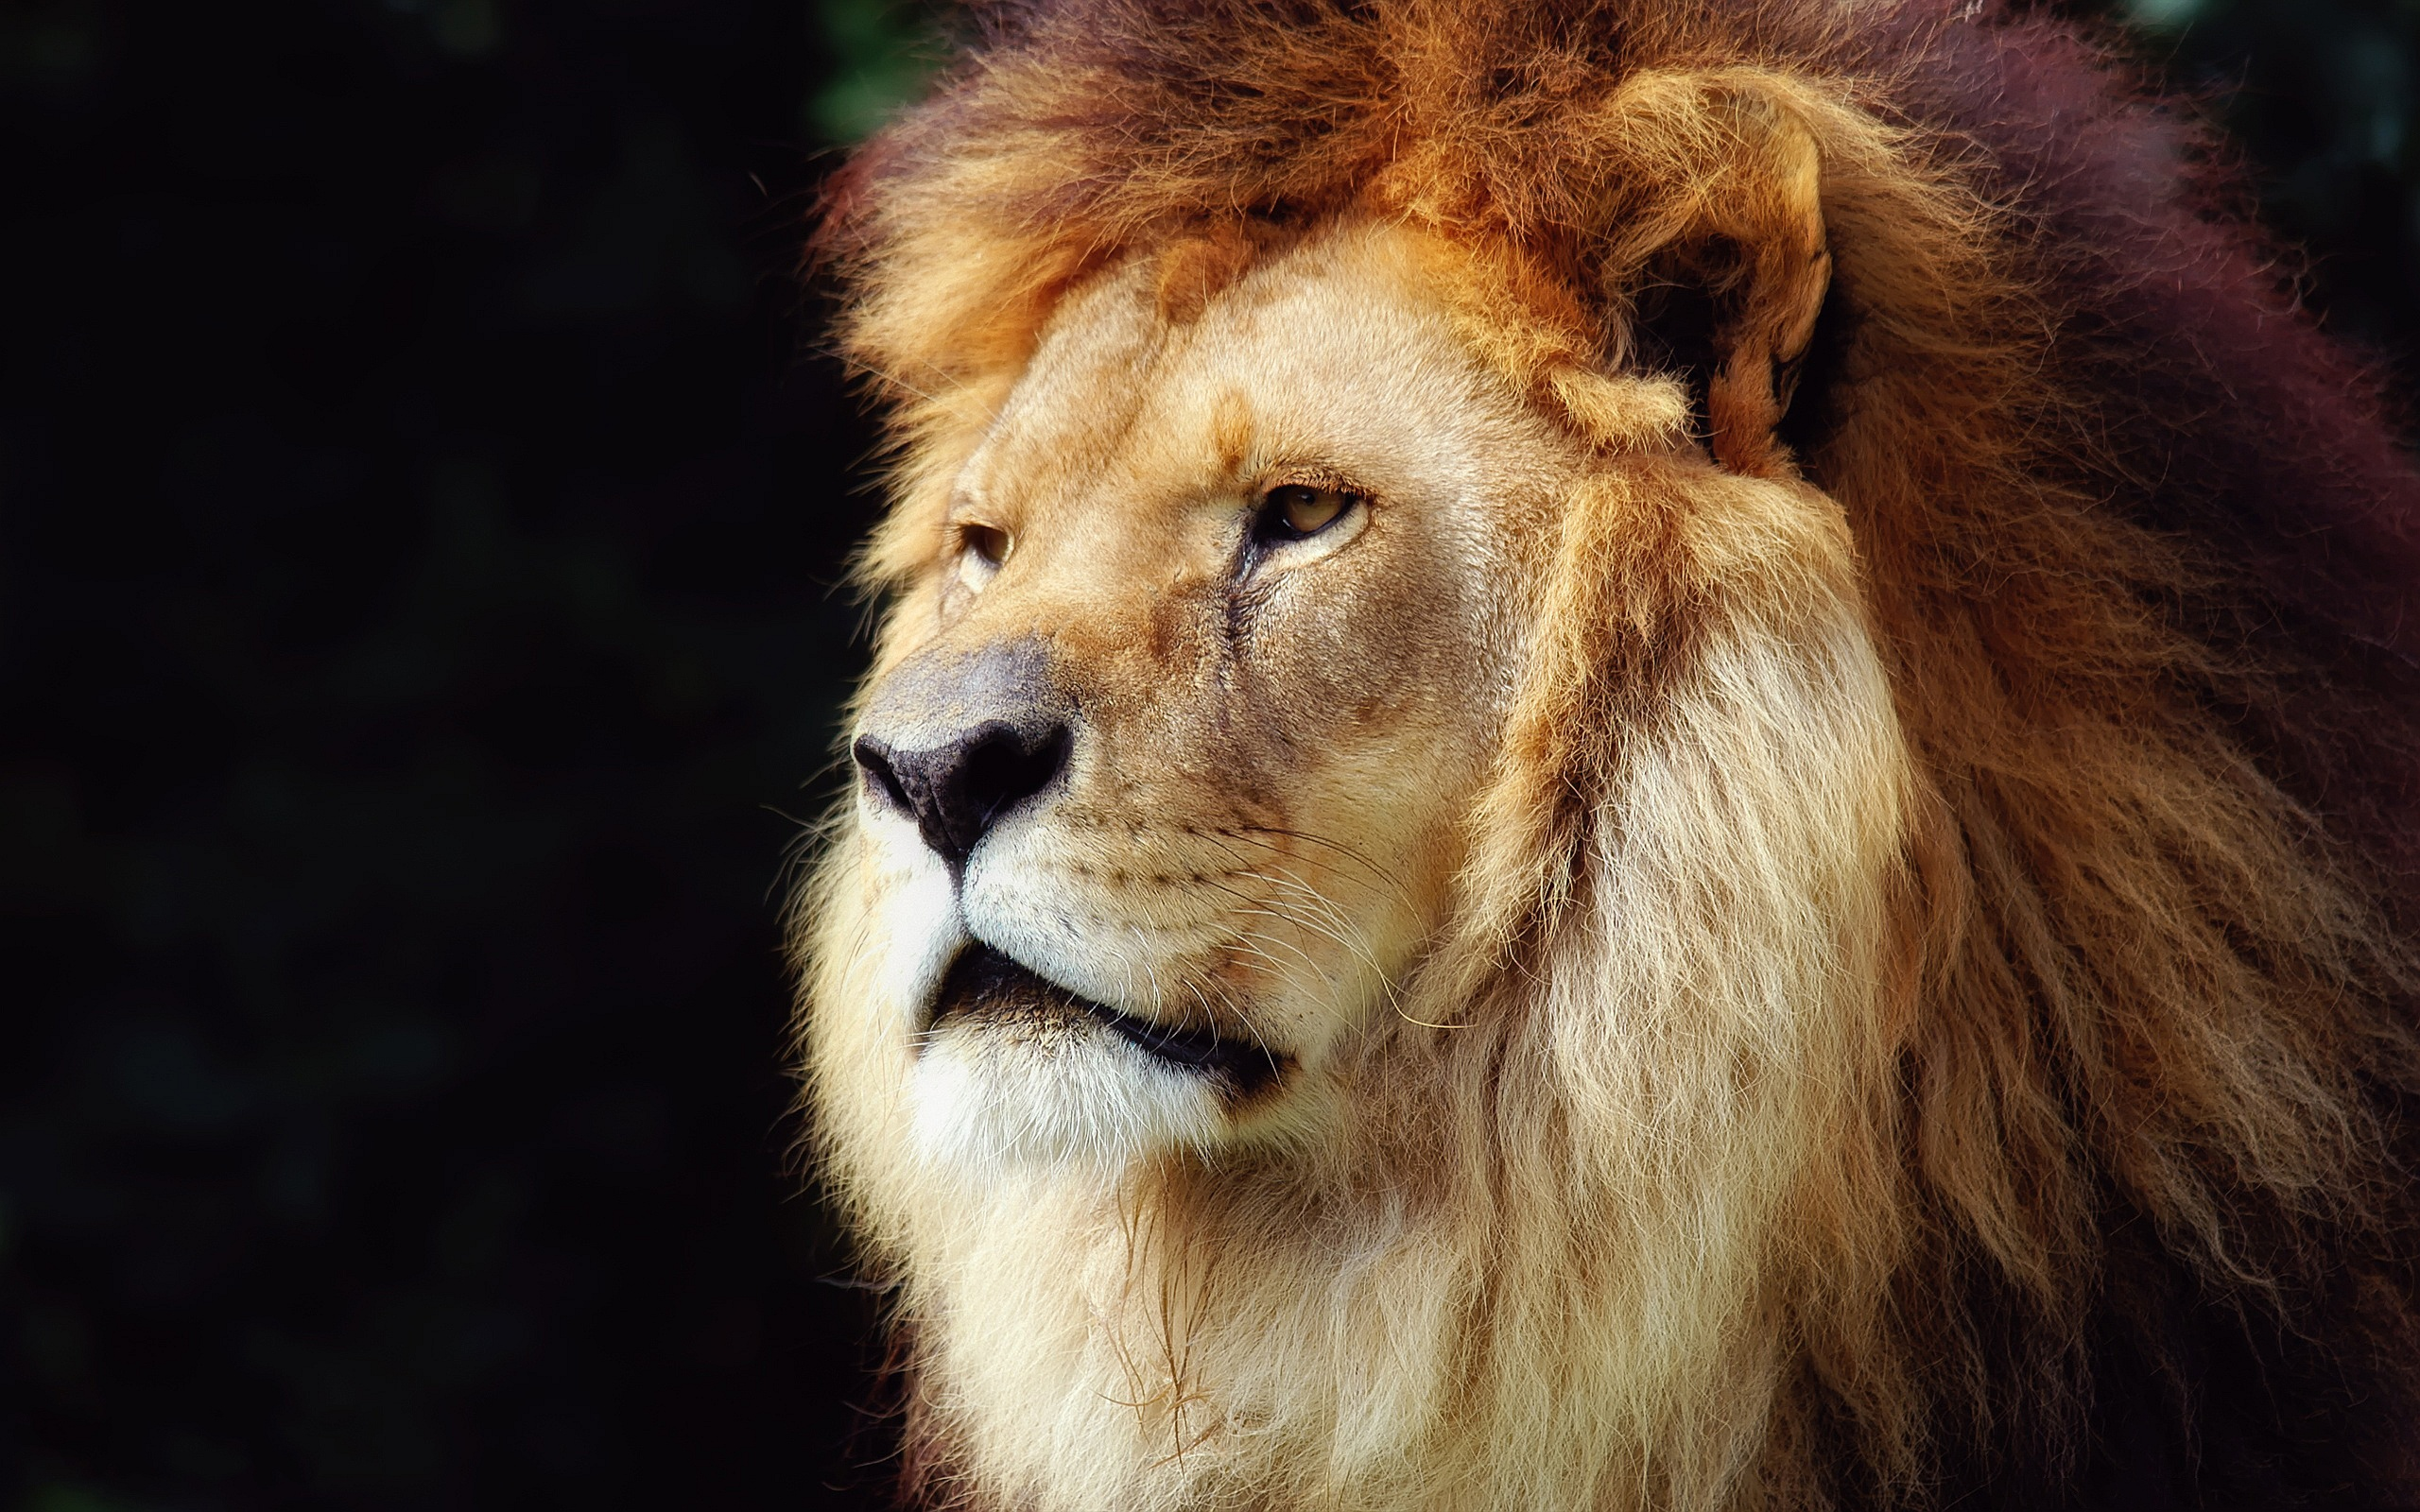 Lion wallpaper for phone dowload 3d hd picture design download 2560x1600